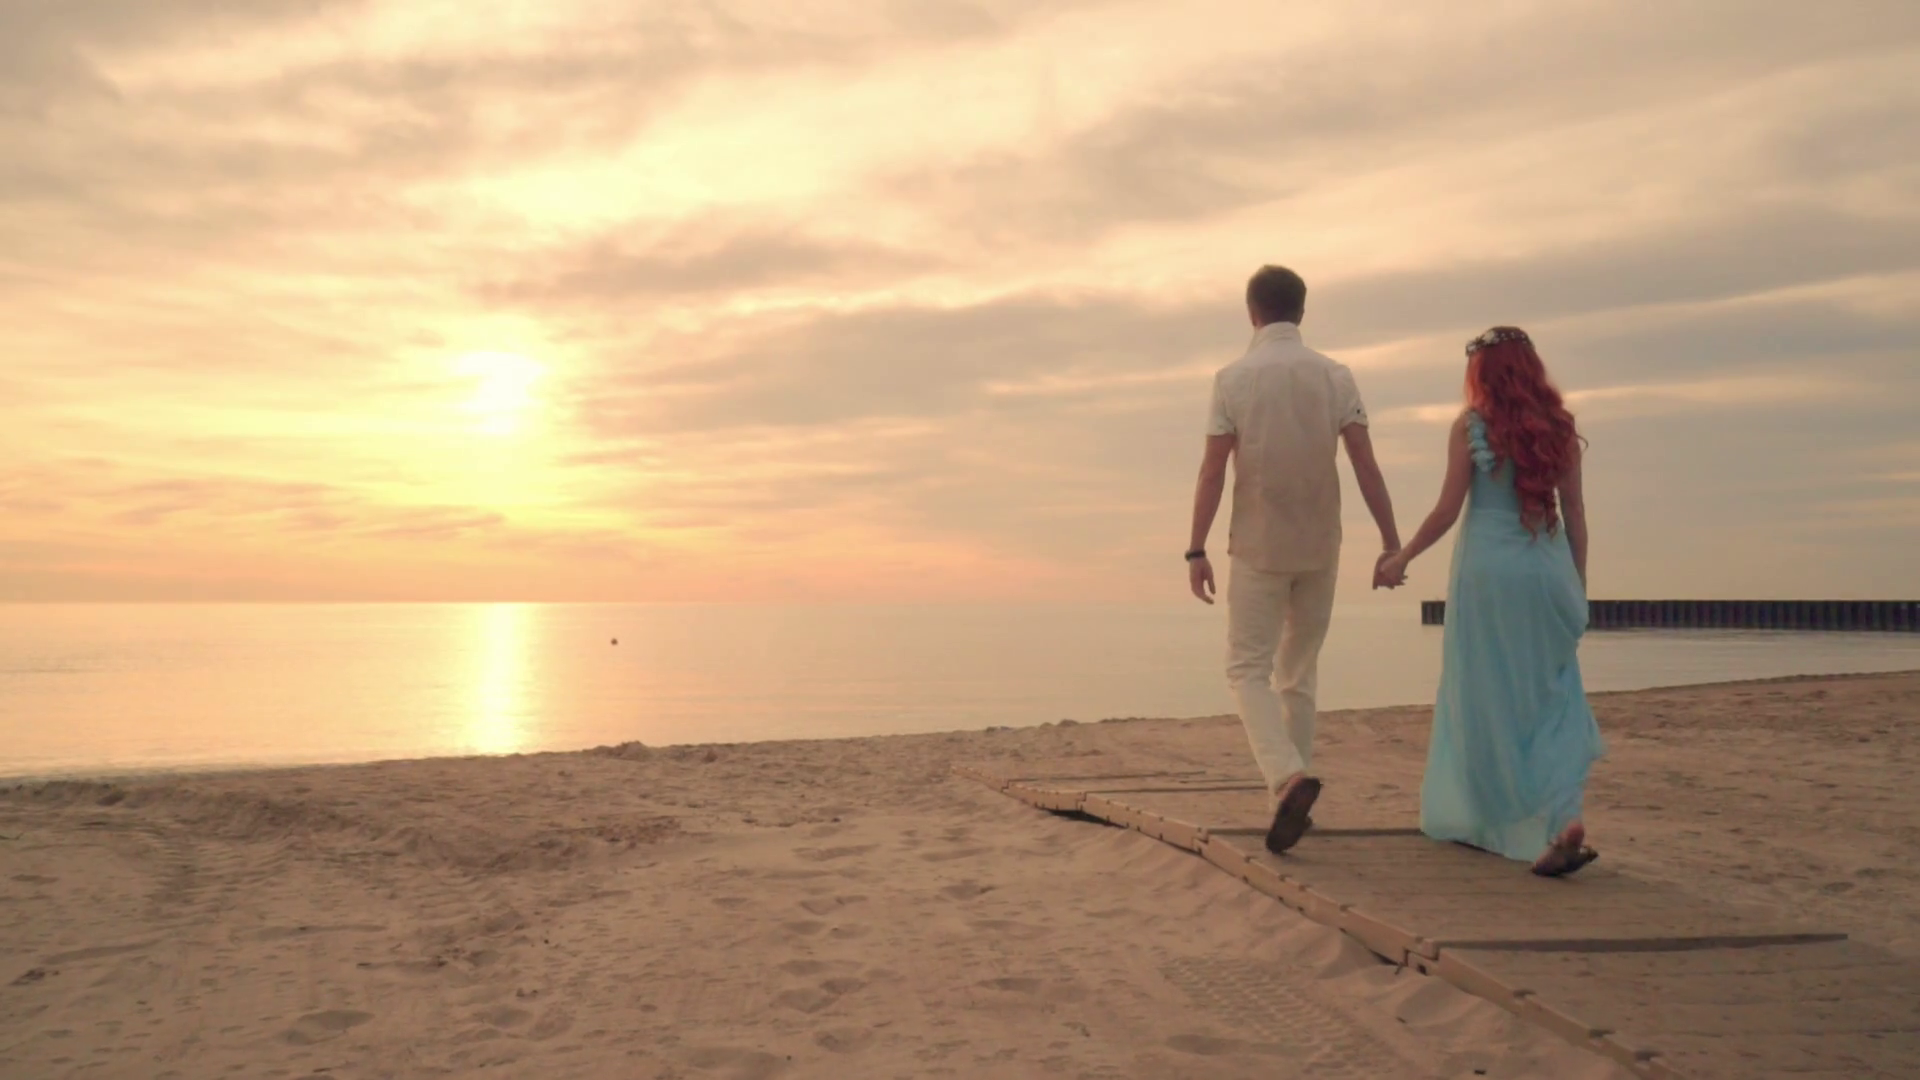 romantic-couple-beach-couple-beach-couple-walking-on-beach-love-concept-attractive-couple-at-sunset-near-ocean-honeymoon-vacation-romantic-couple-in-love-love-couple-holding-hands-at-sunset_re1yf1_-e_thumbnail-full01.png